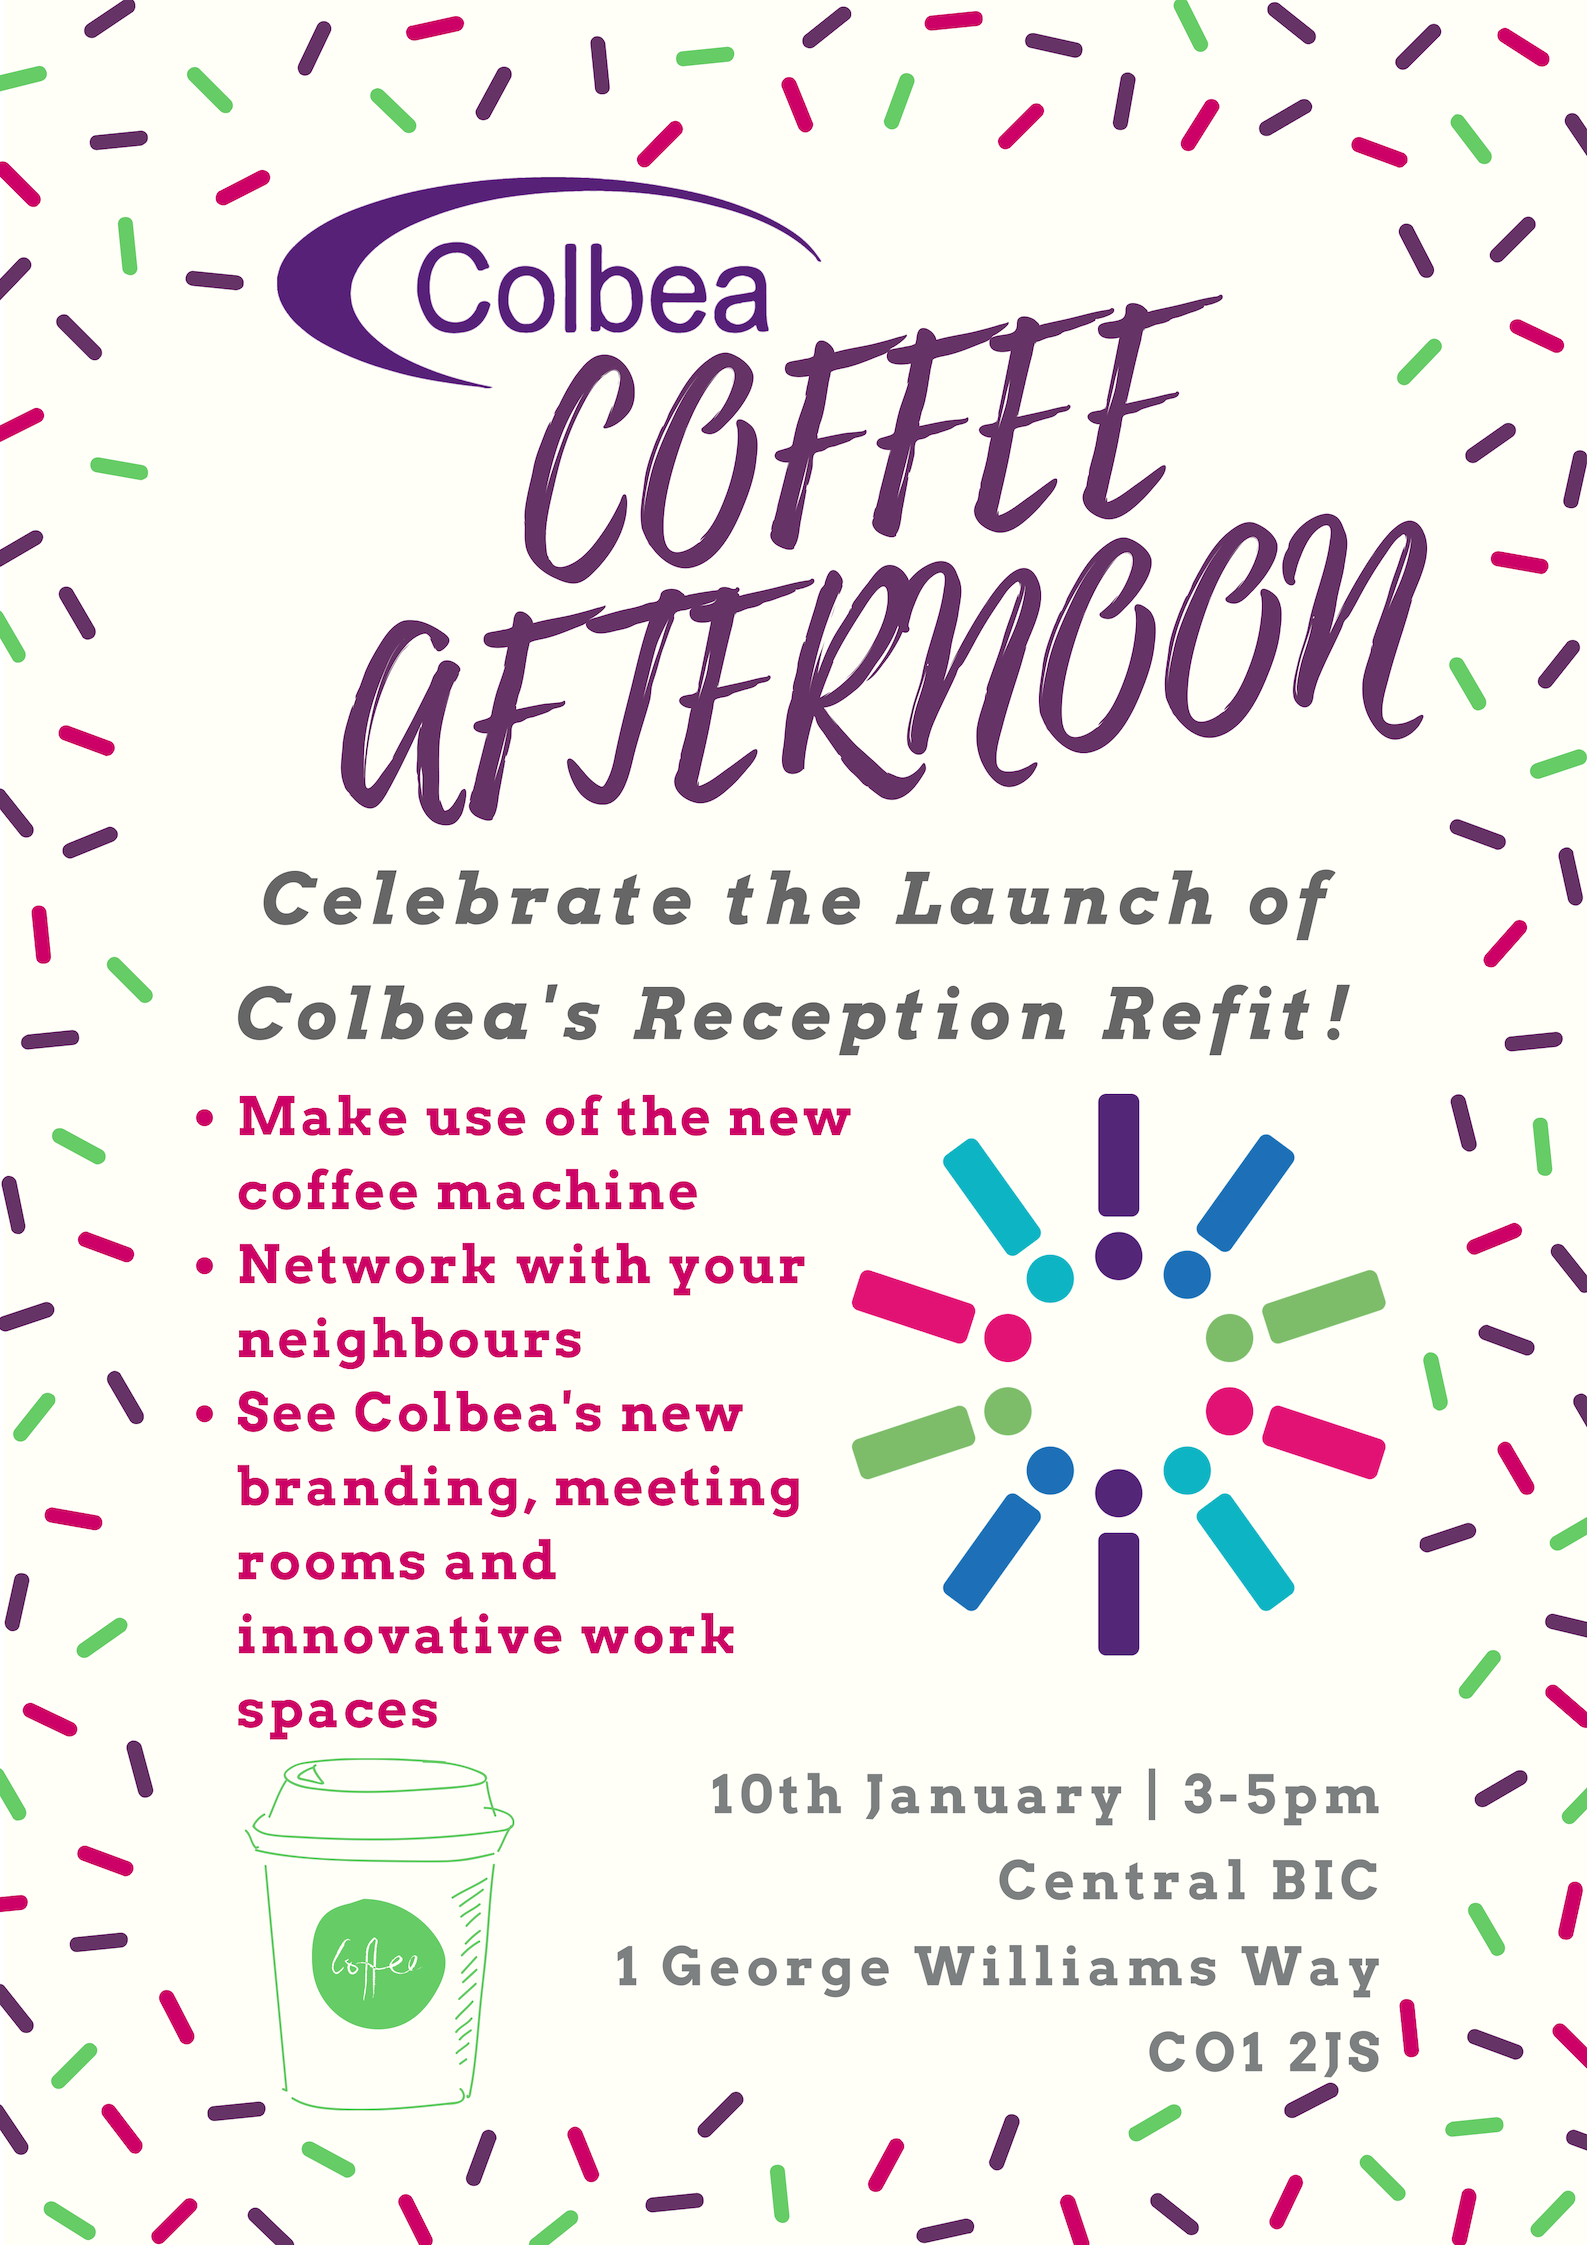 Colbea Coffee Afternoon Reception Refit Launch